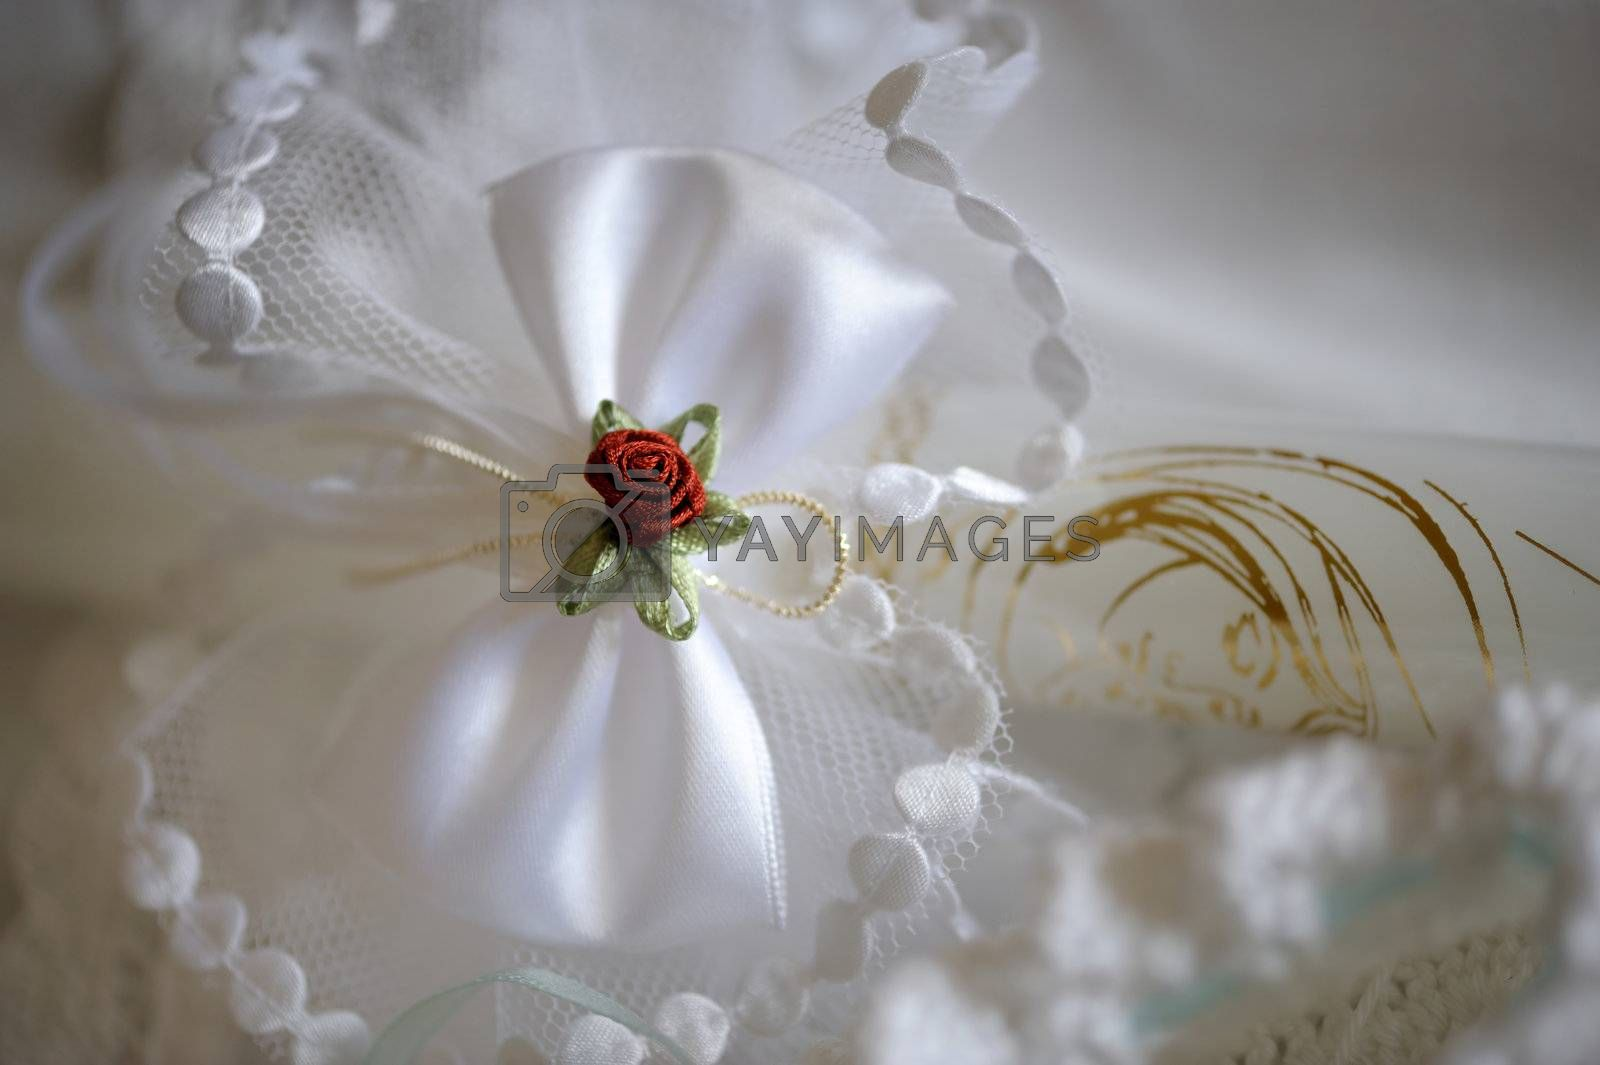 White and red wedding decoration set consisting of white candle, red flower and white rbow